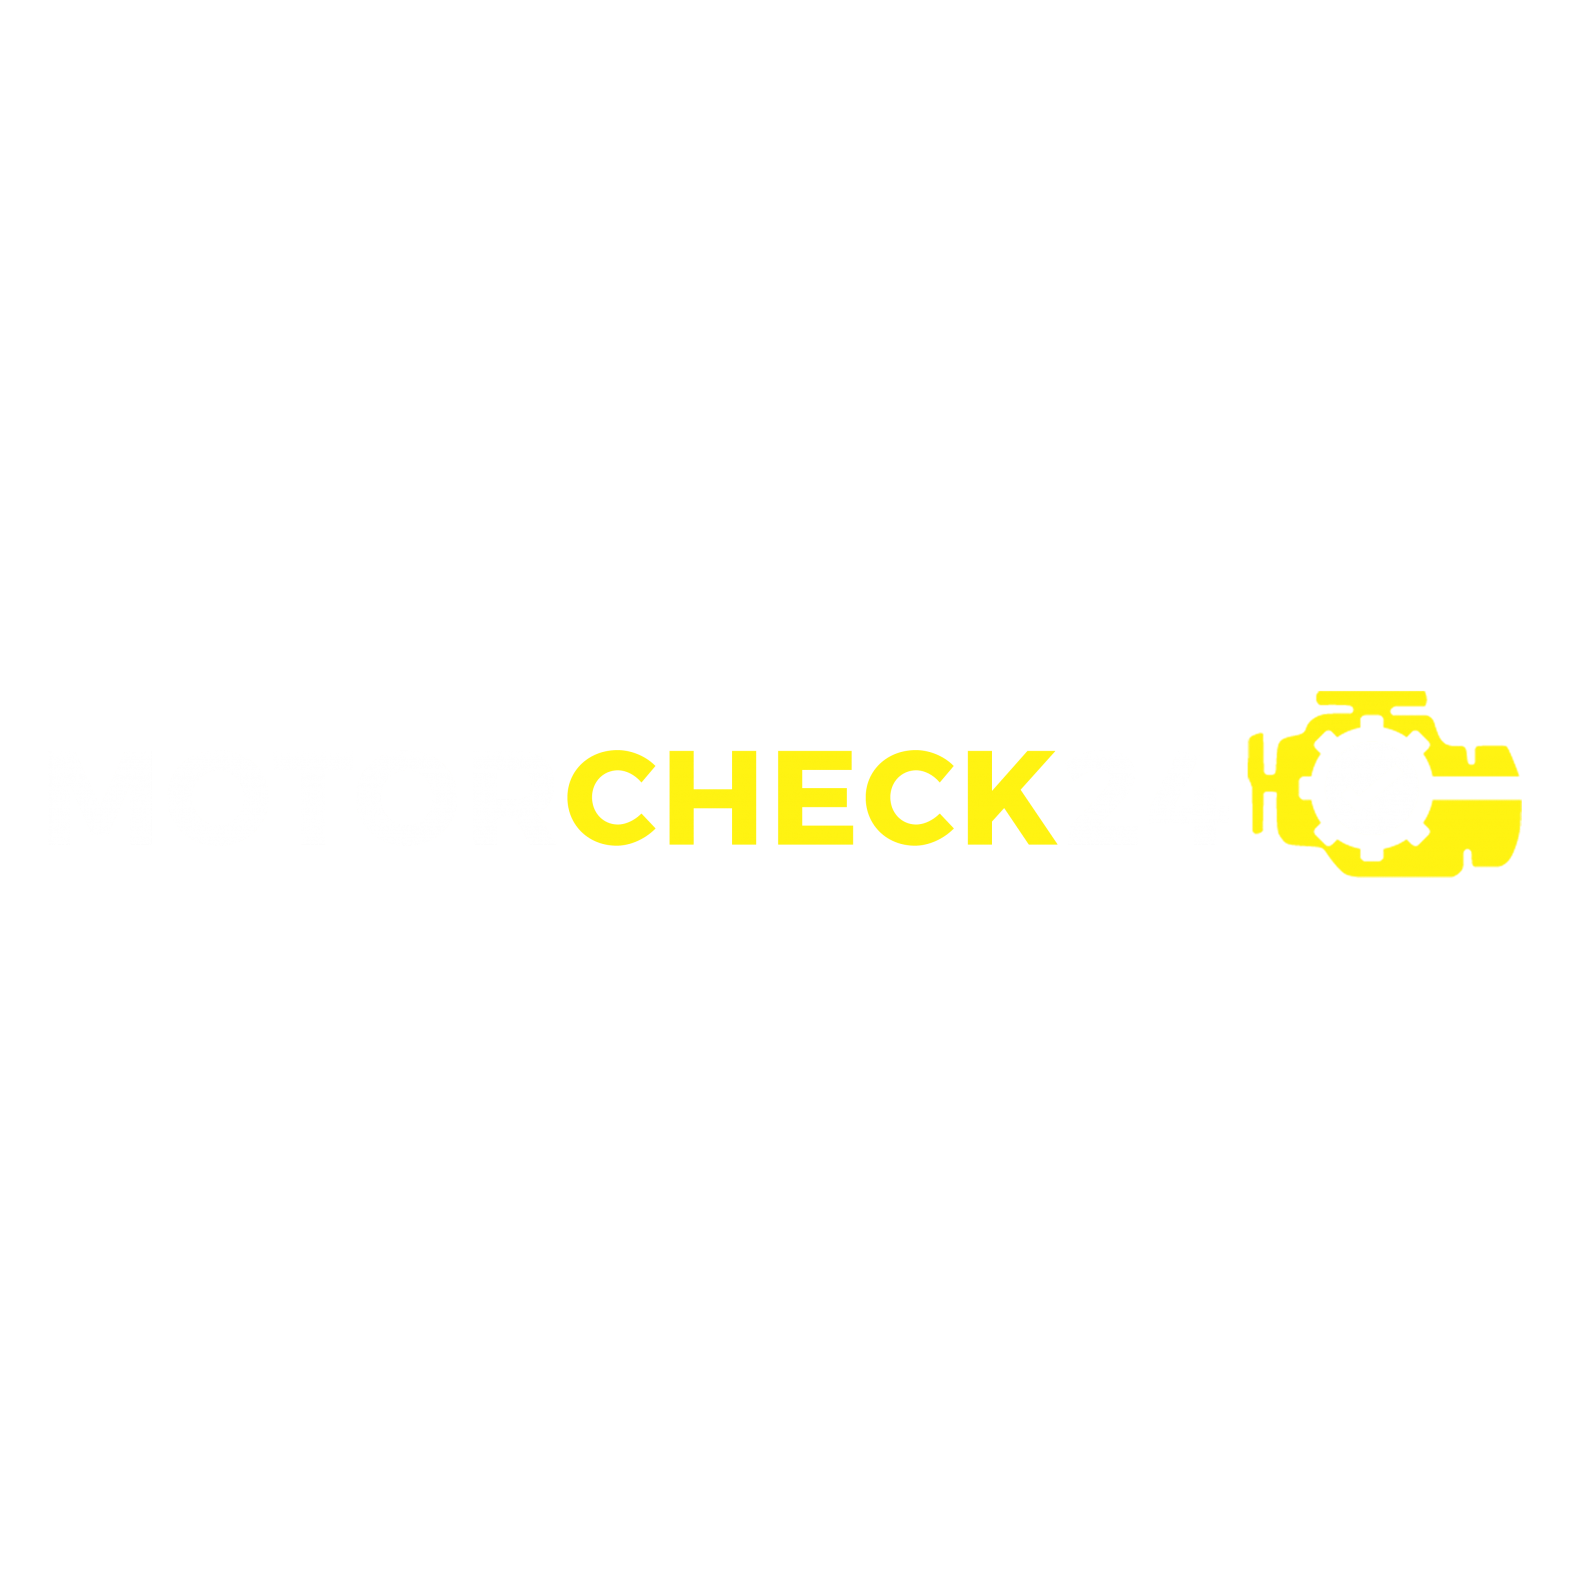 guidelocal - Motorcheck24 in Bielefeld